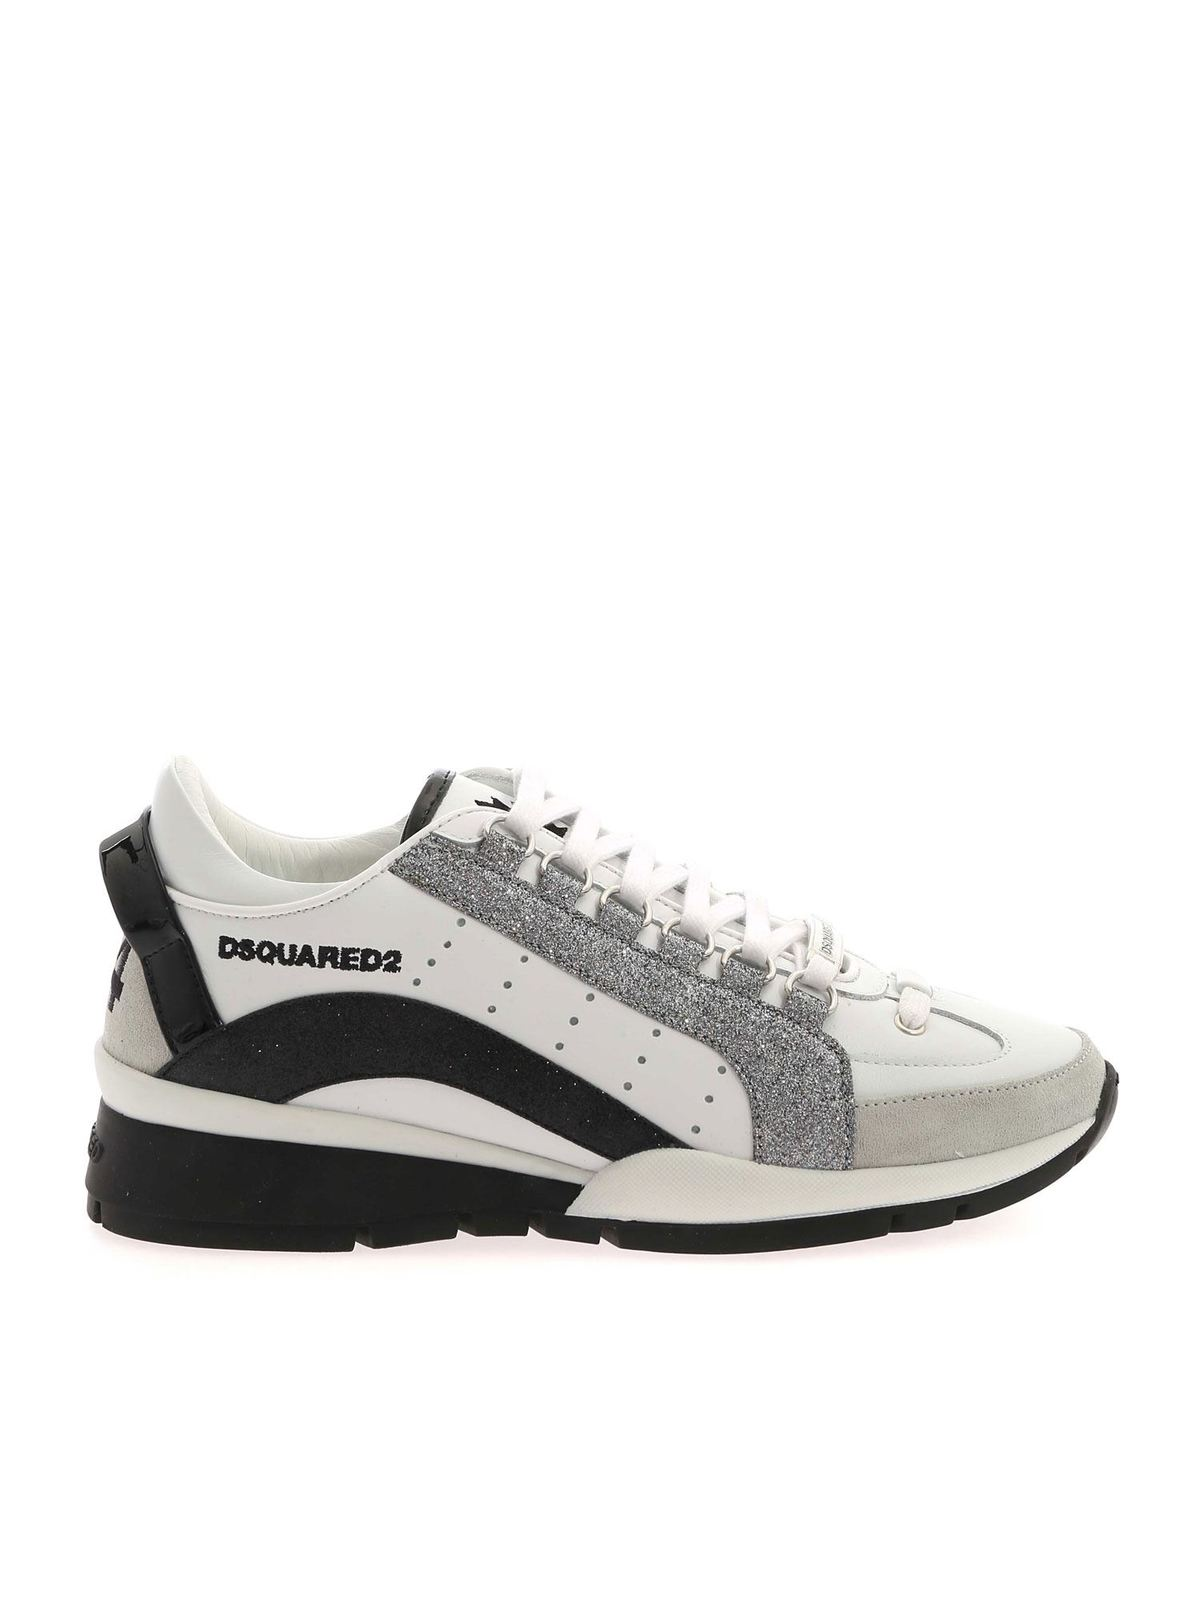 DSQUARED2 LACE UP LOW TOP WHITE SNEAKERS FEATURING GLIT